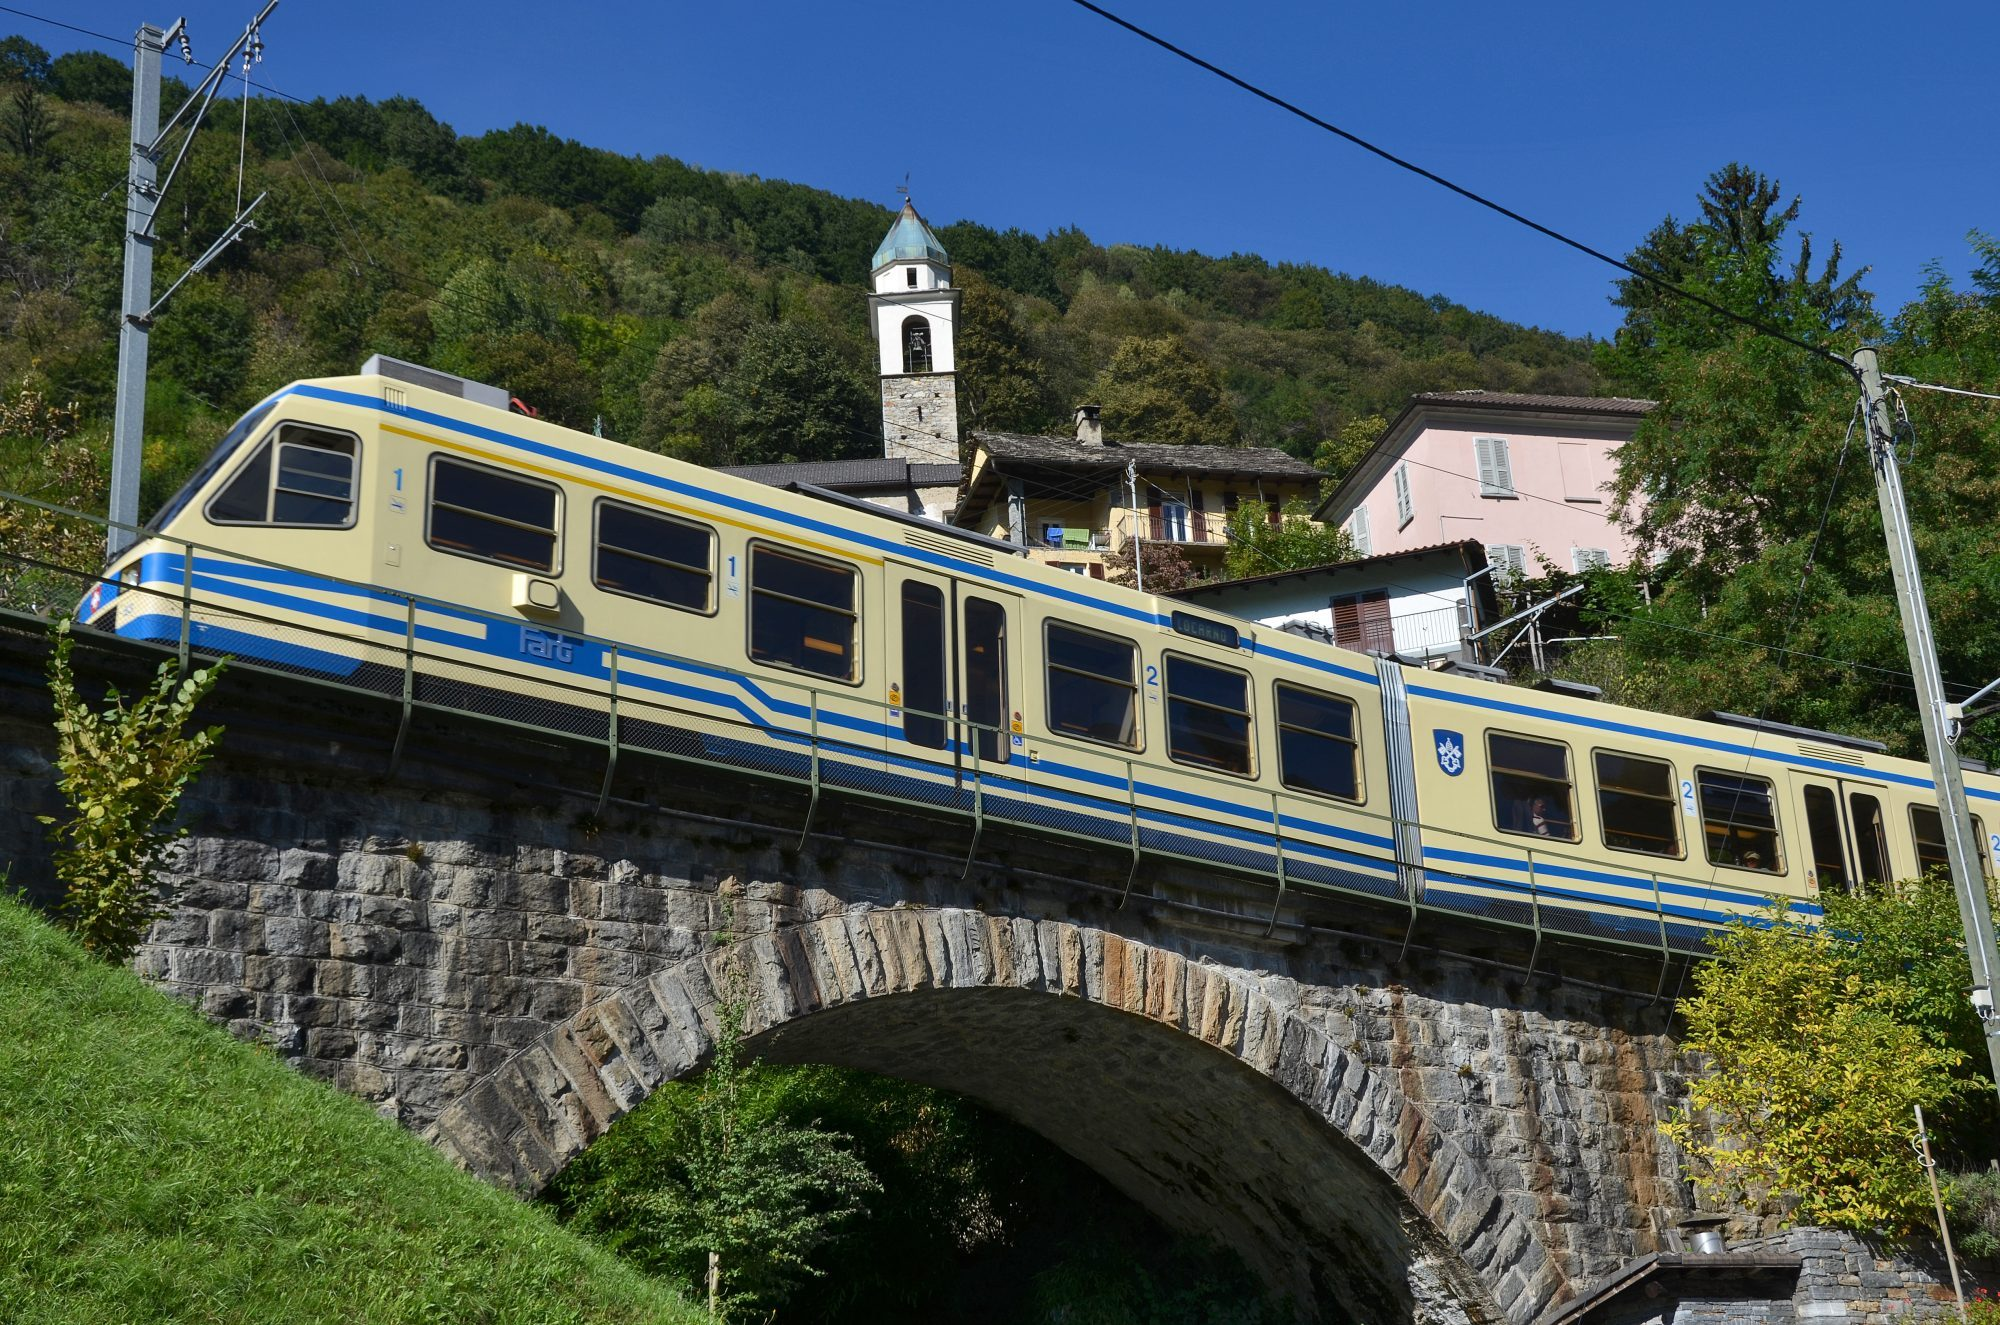 Centovalli means Hundred Valleys, The scenic train called Centovallina that joins Domodossola in Italy and Locarno in Switzerland.